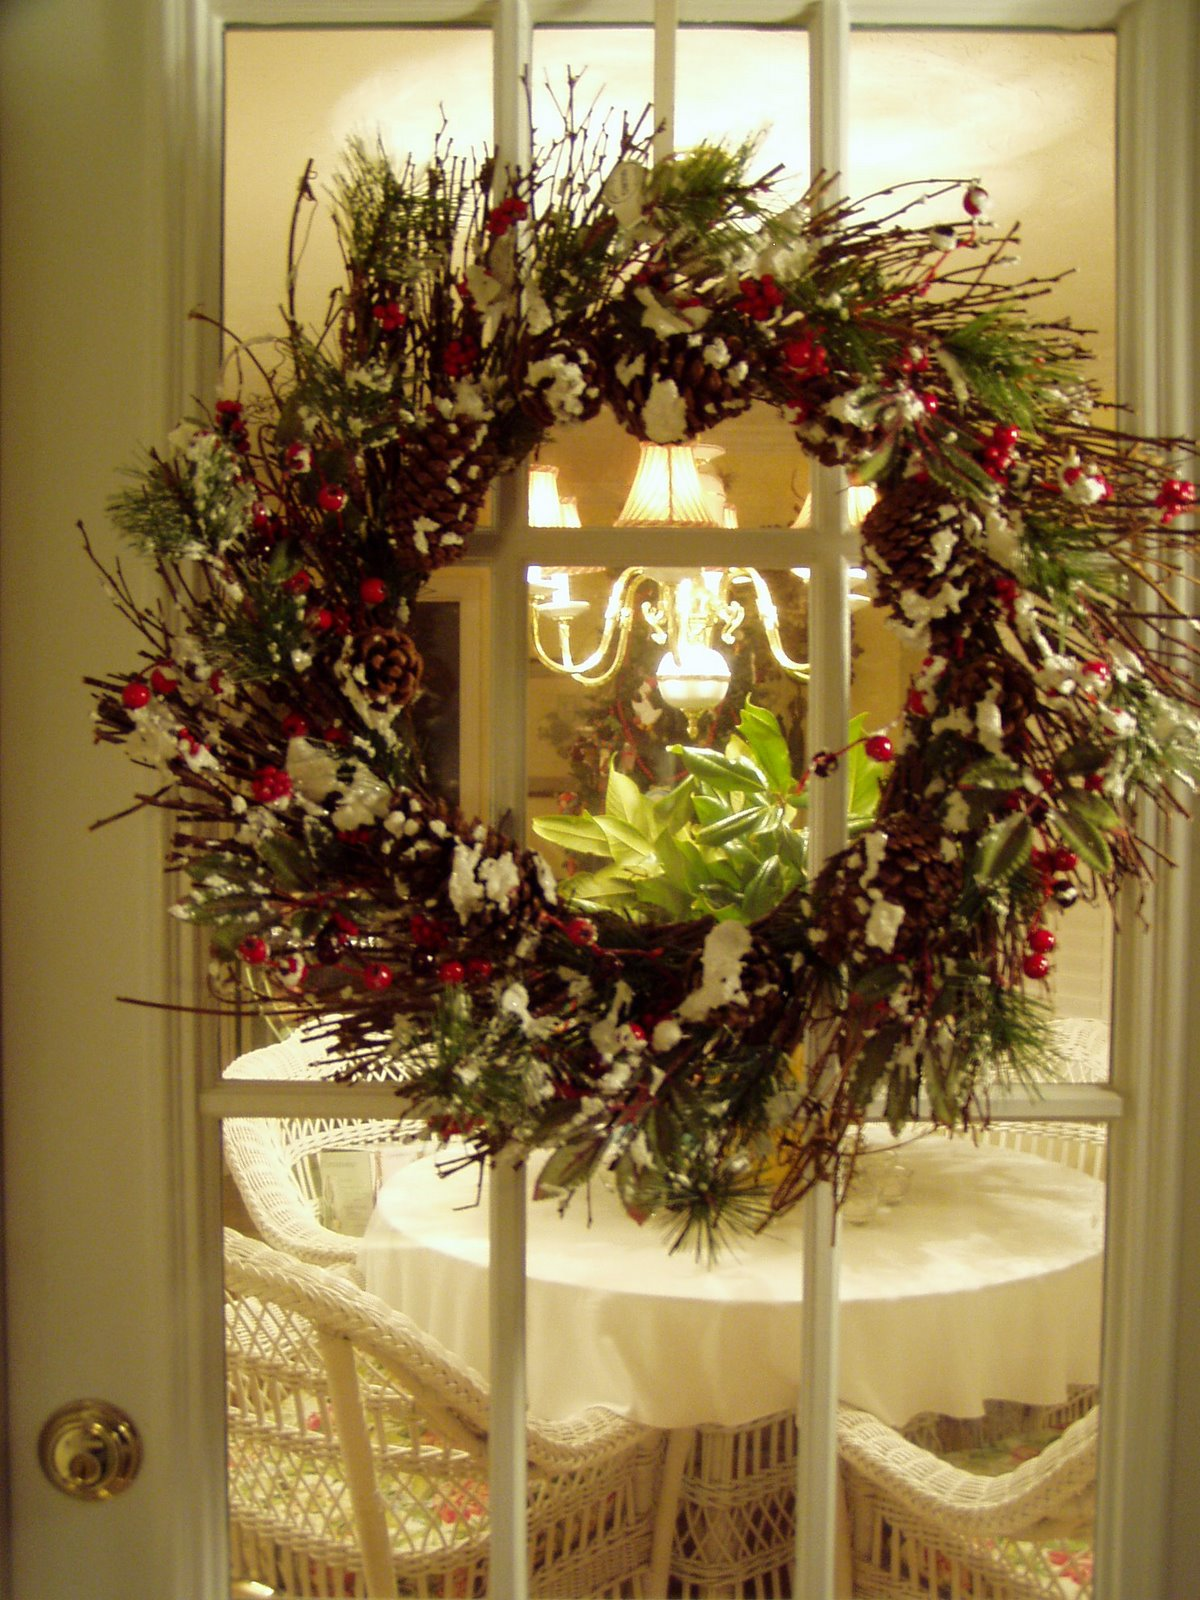 Circular Christmas Decoration For The Front Door